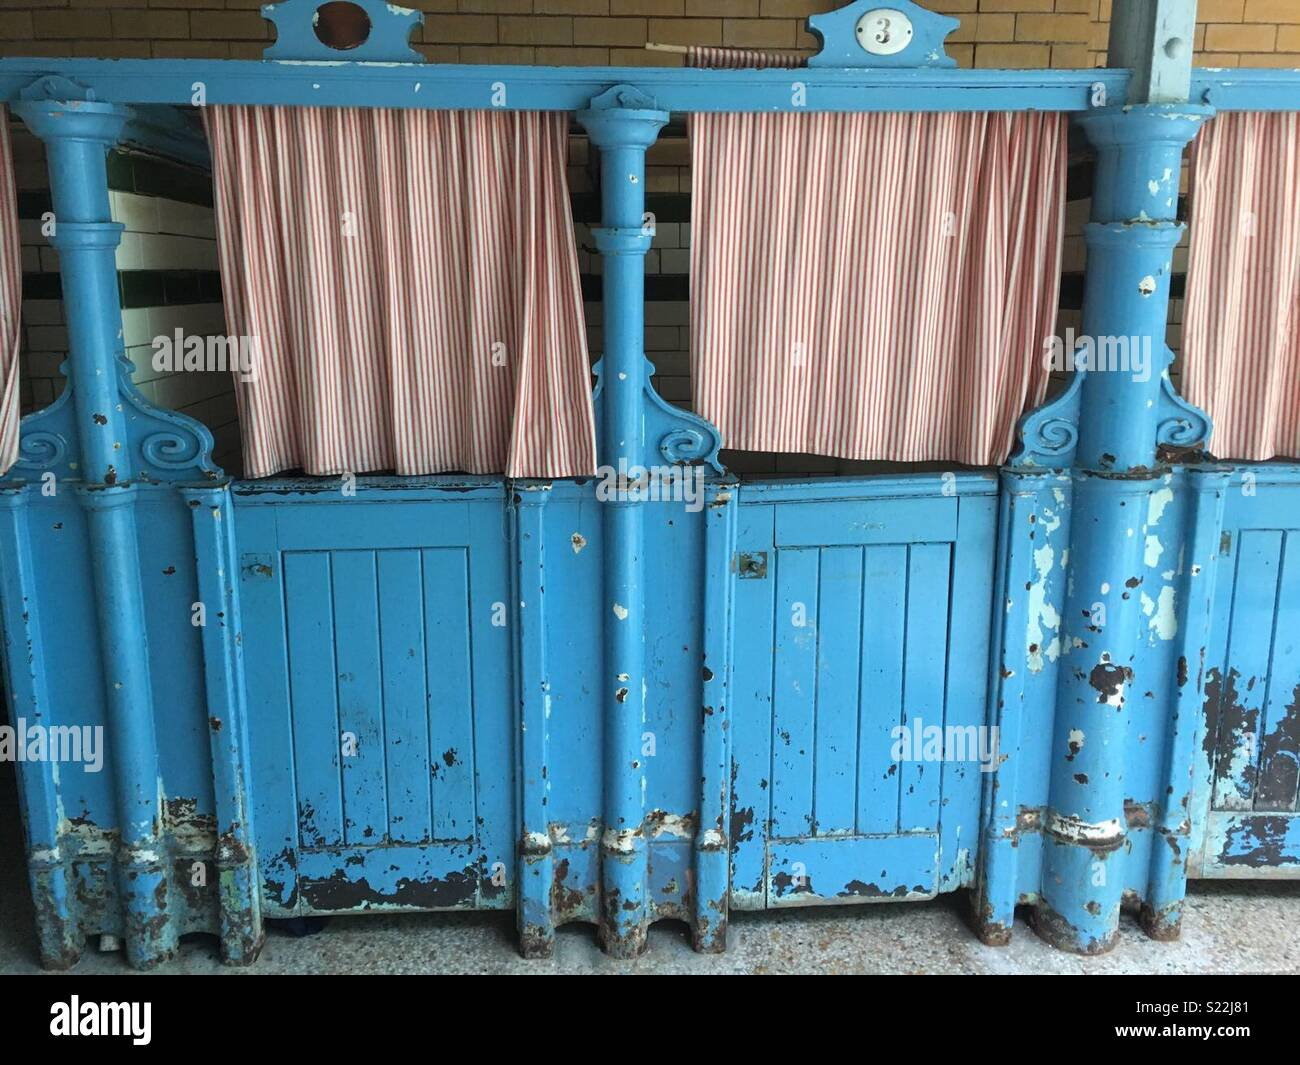 Victorian changing stalls at Victoria Baths in Manchester. - Stock Image